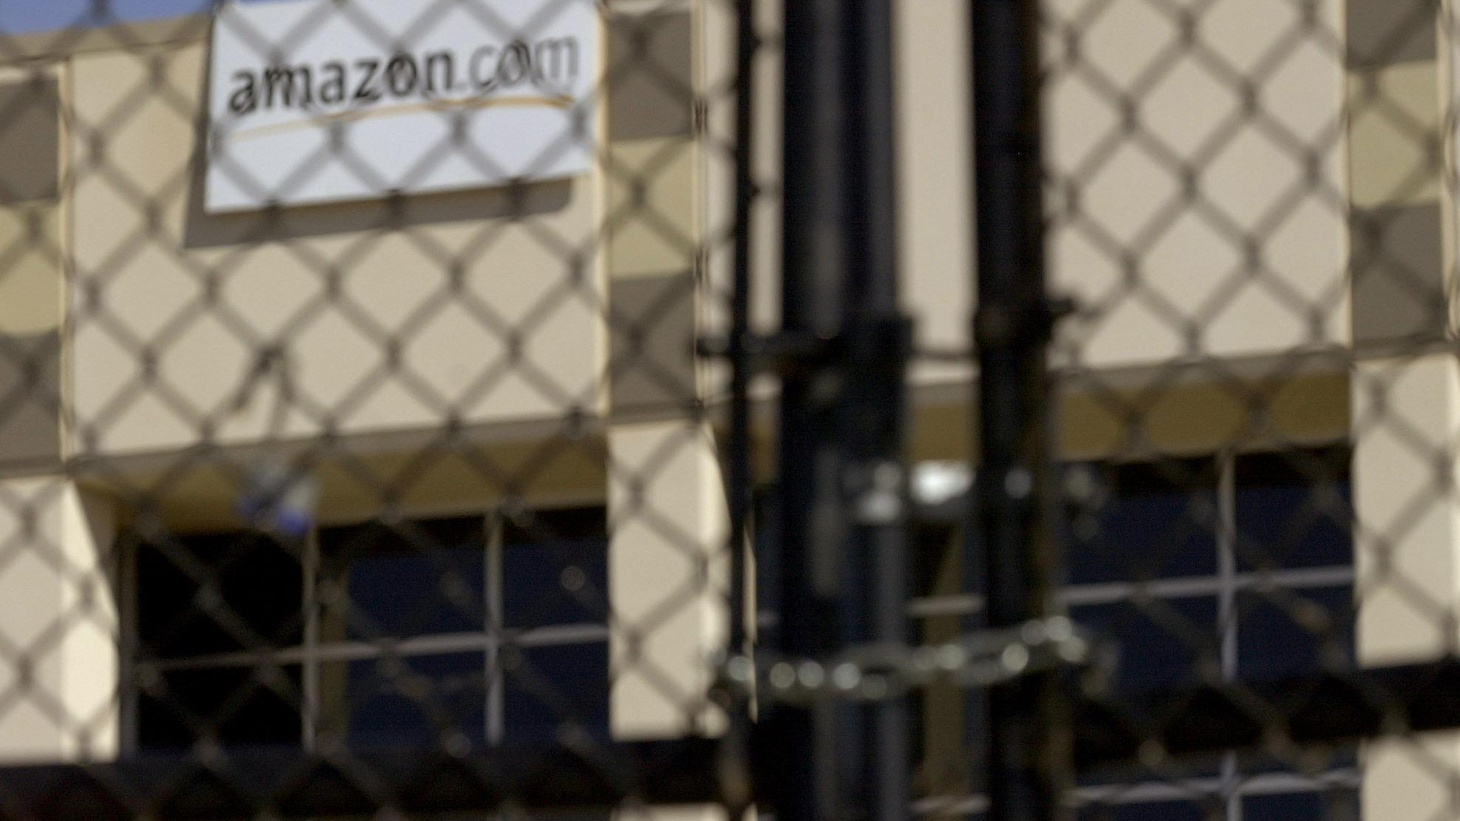 Amazon is America's most popular online retailer, but it's at war with the State of California, which has enacted a law requiring it to collect sales taxes....